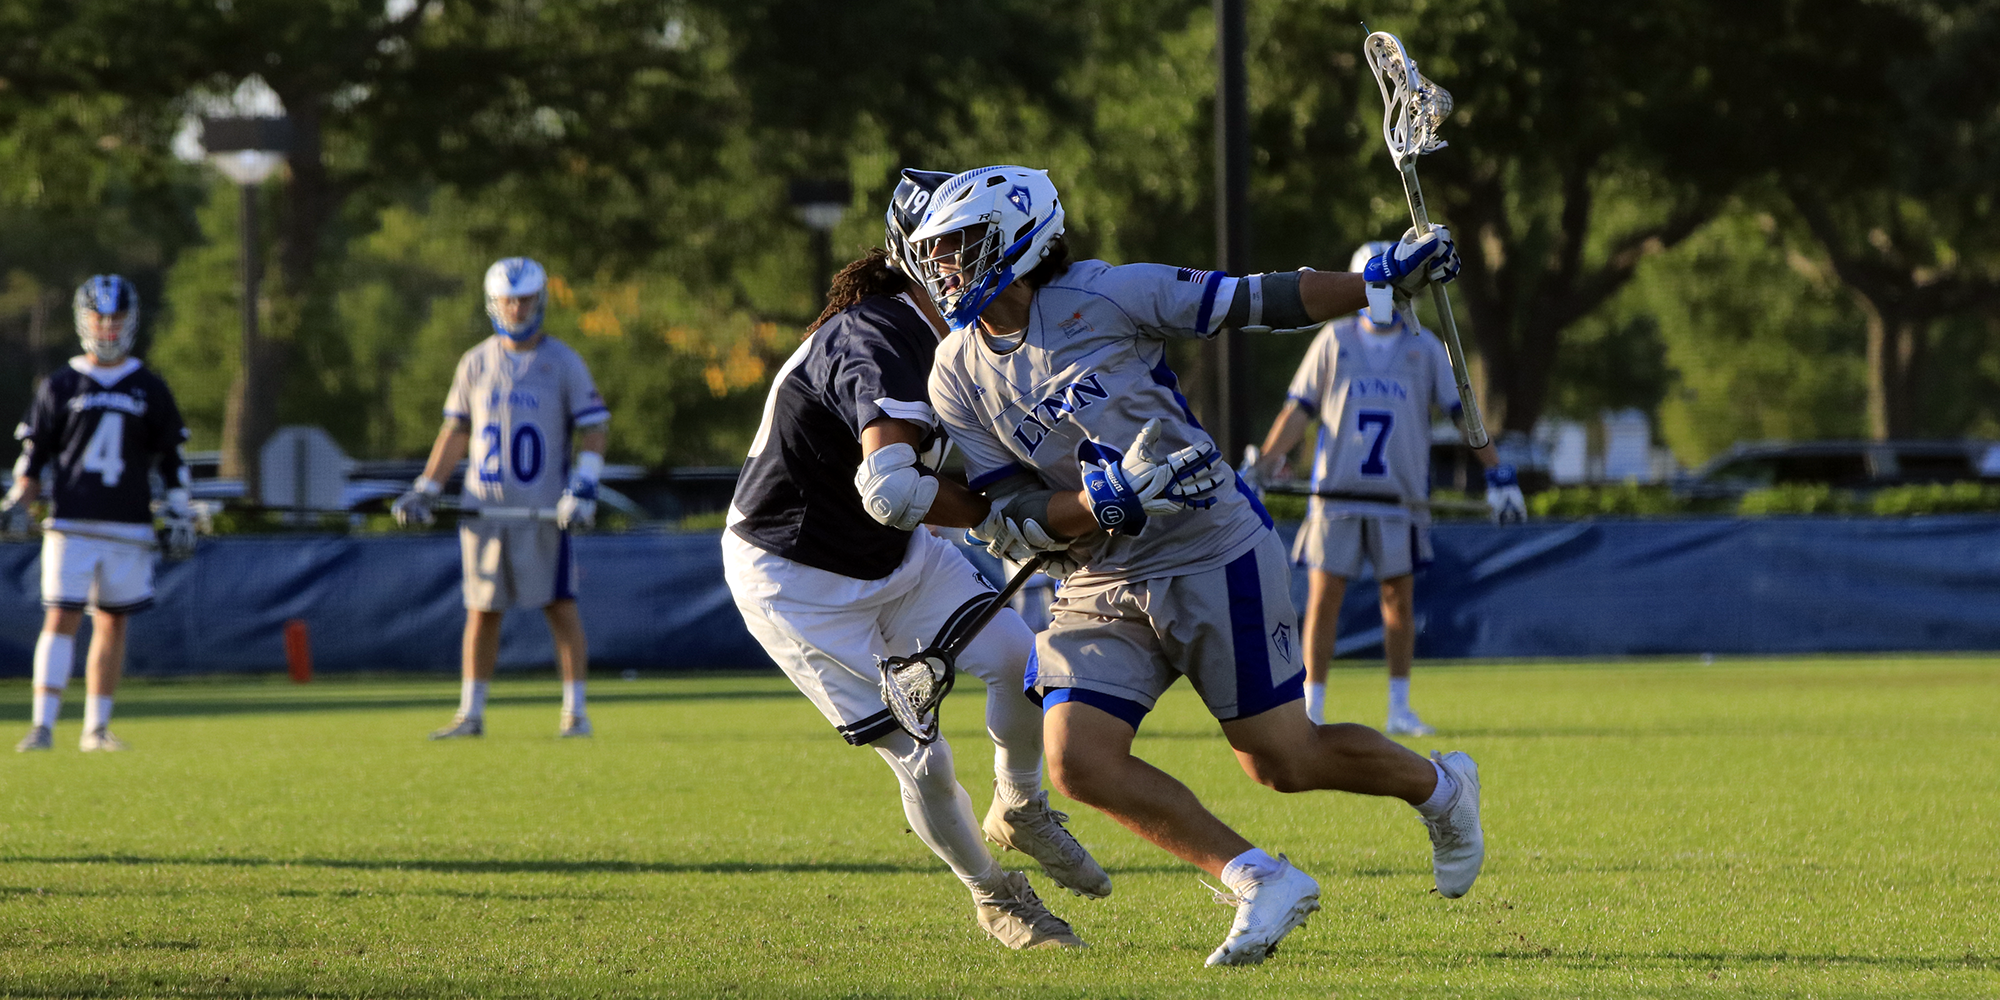 Men's Lacrosse Caps Nonconference Play with Regional Win